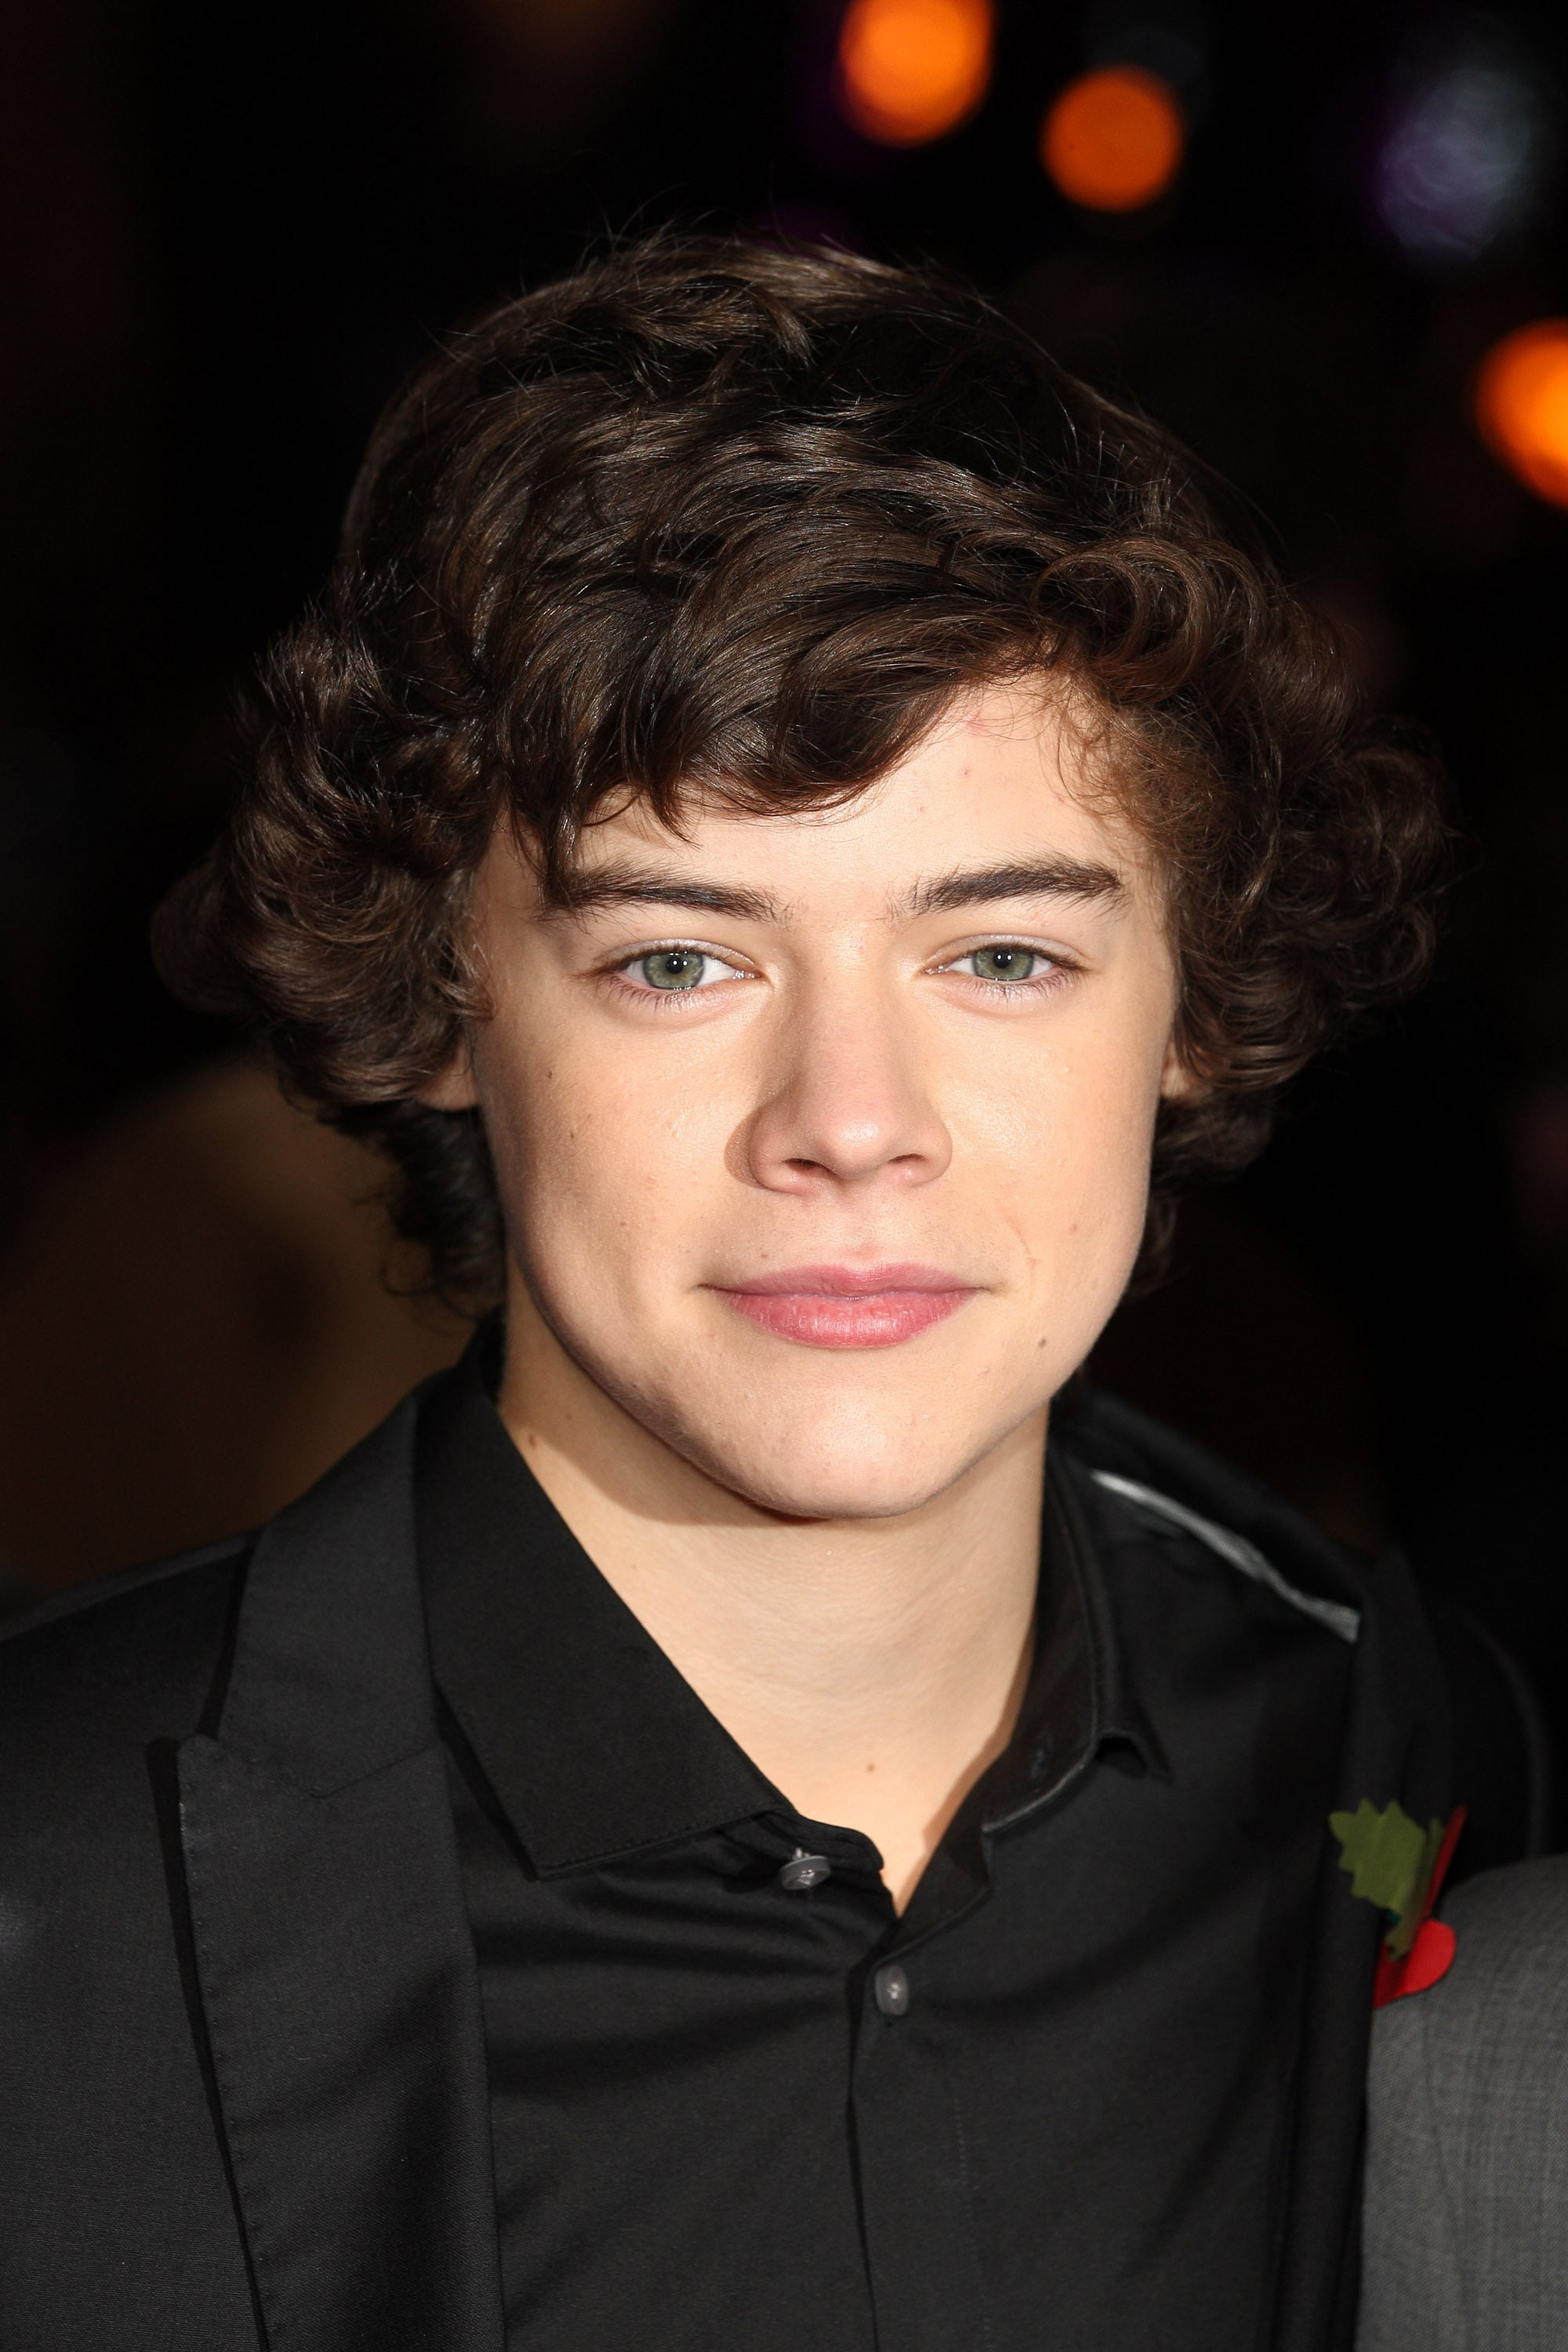 Harry Styles attends the world premiere of Harry Potter and The Deathly Hallows at Odeon Leicester Square on November 11, 2010 in London, England.